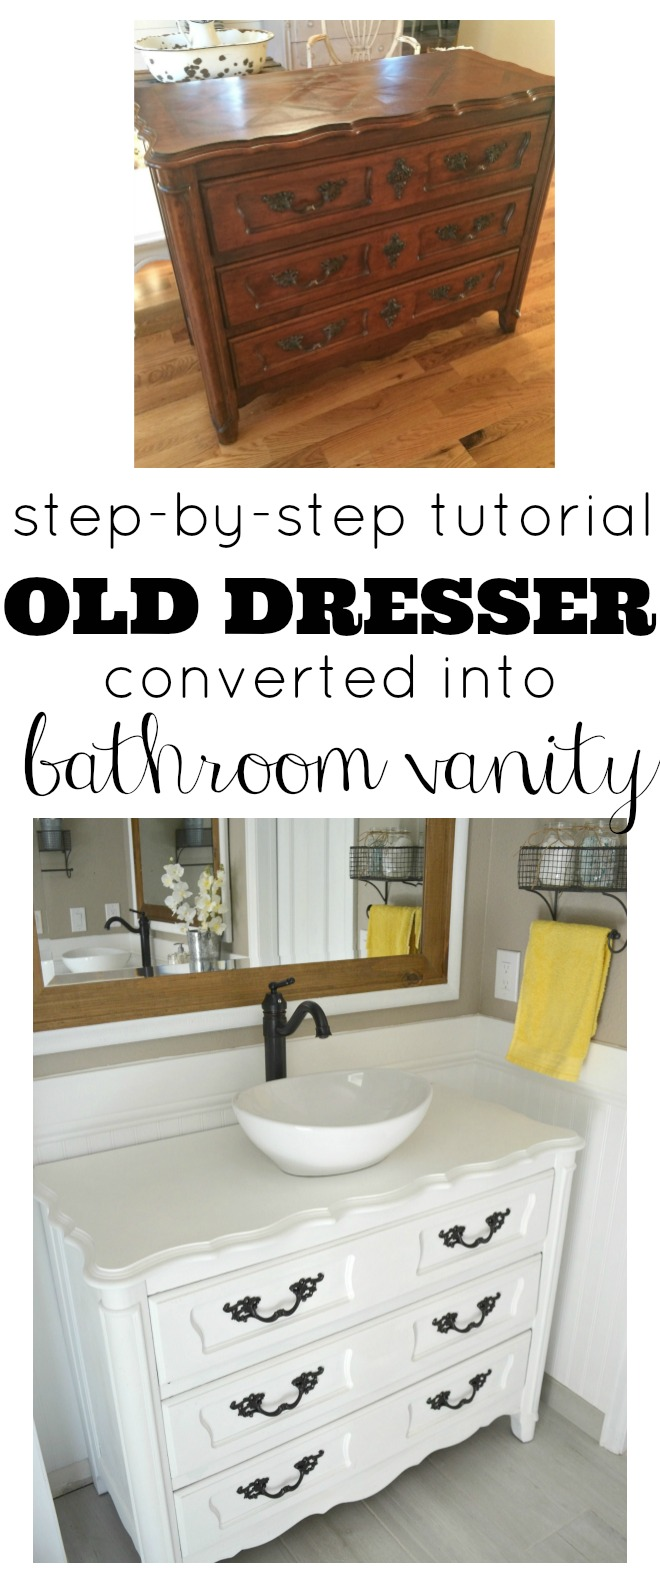 Step By Tutorial For Turning An Old Dresser Into A Bathroom Vanity  Great DIY Turned Bathroom Vanity Tutorial